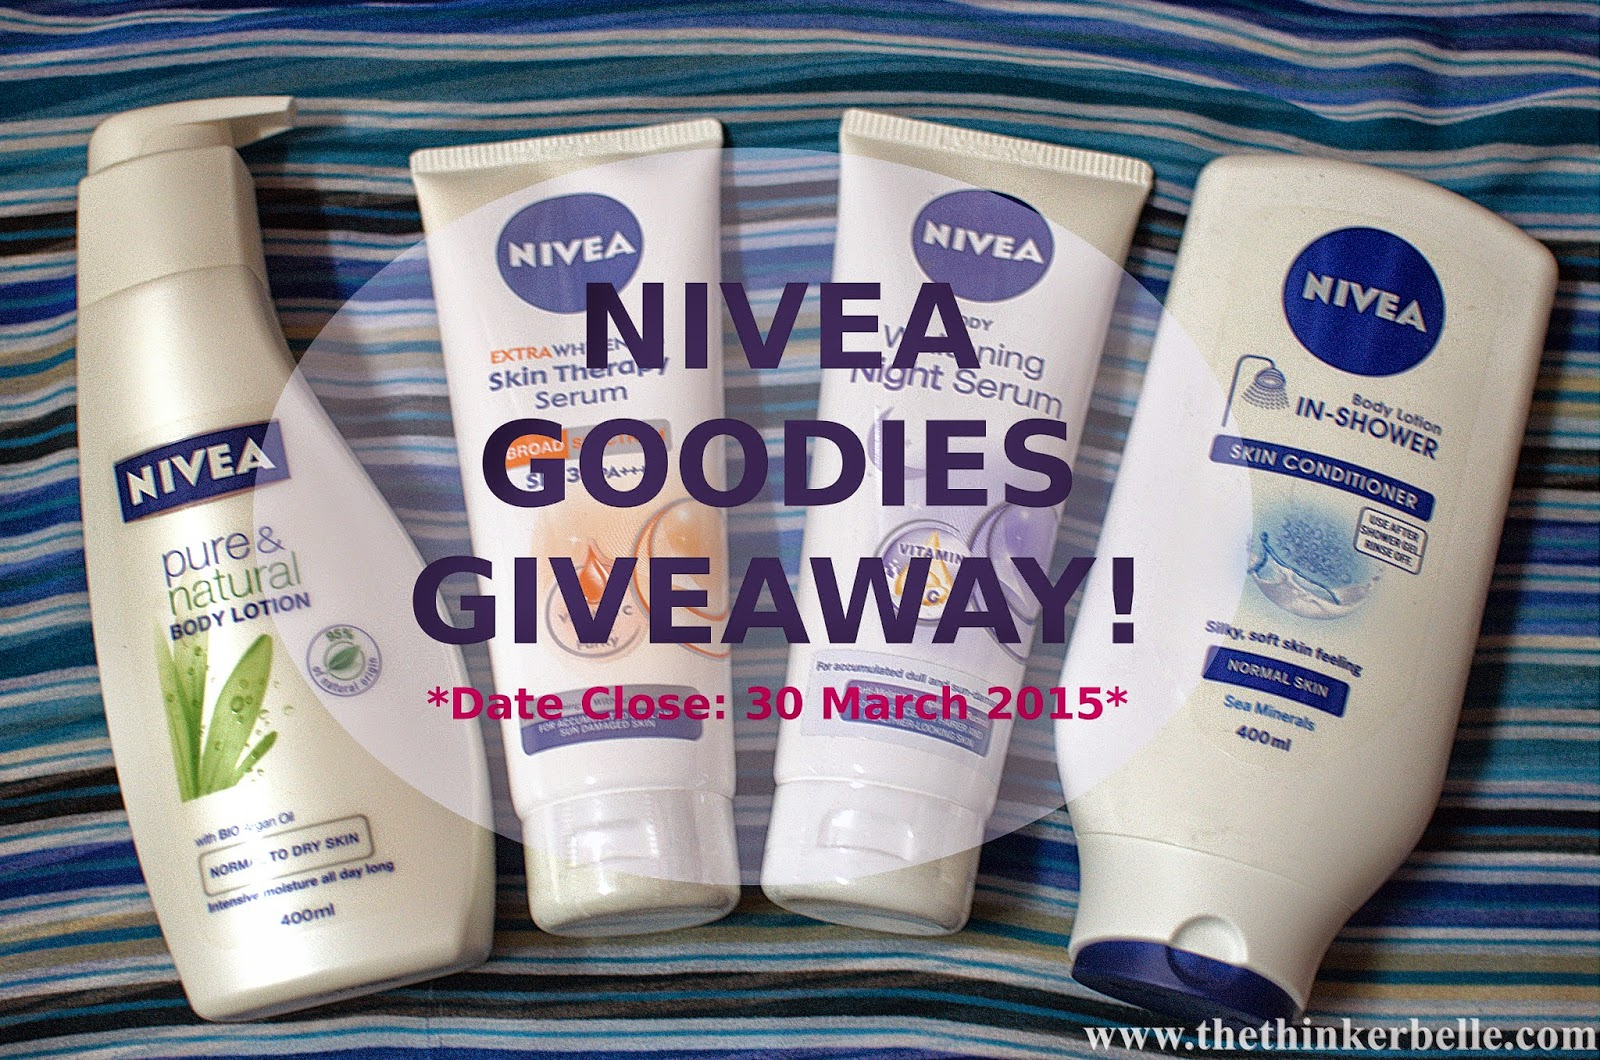 nivea extra whitening skin theraphy serum